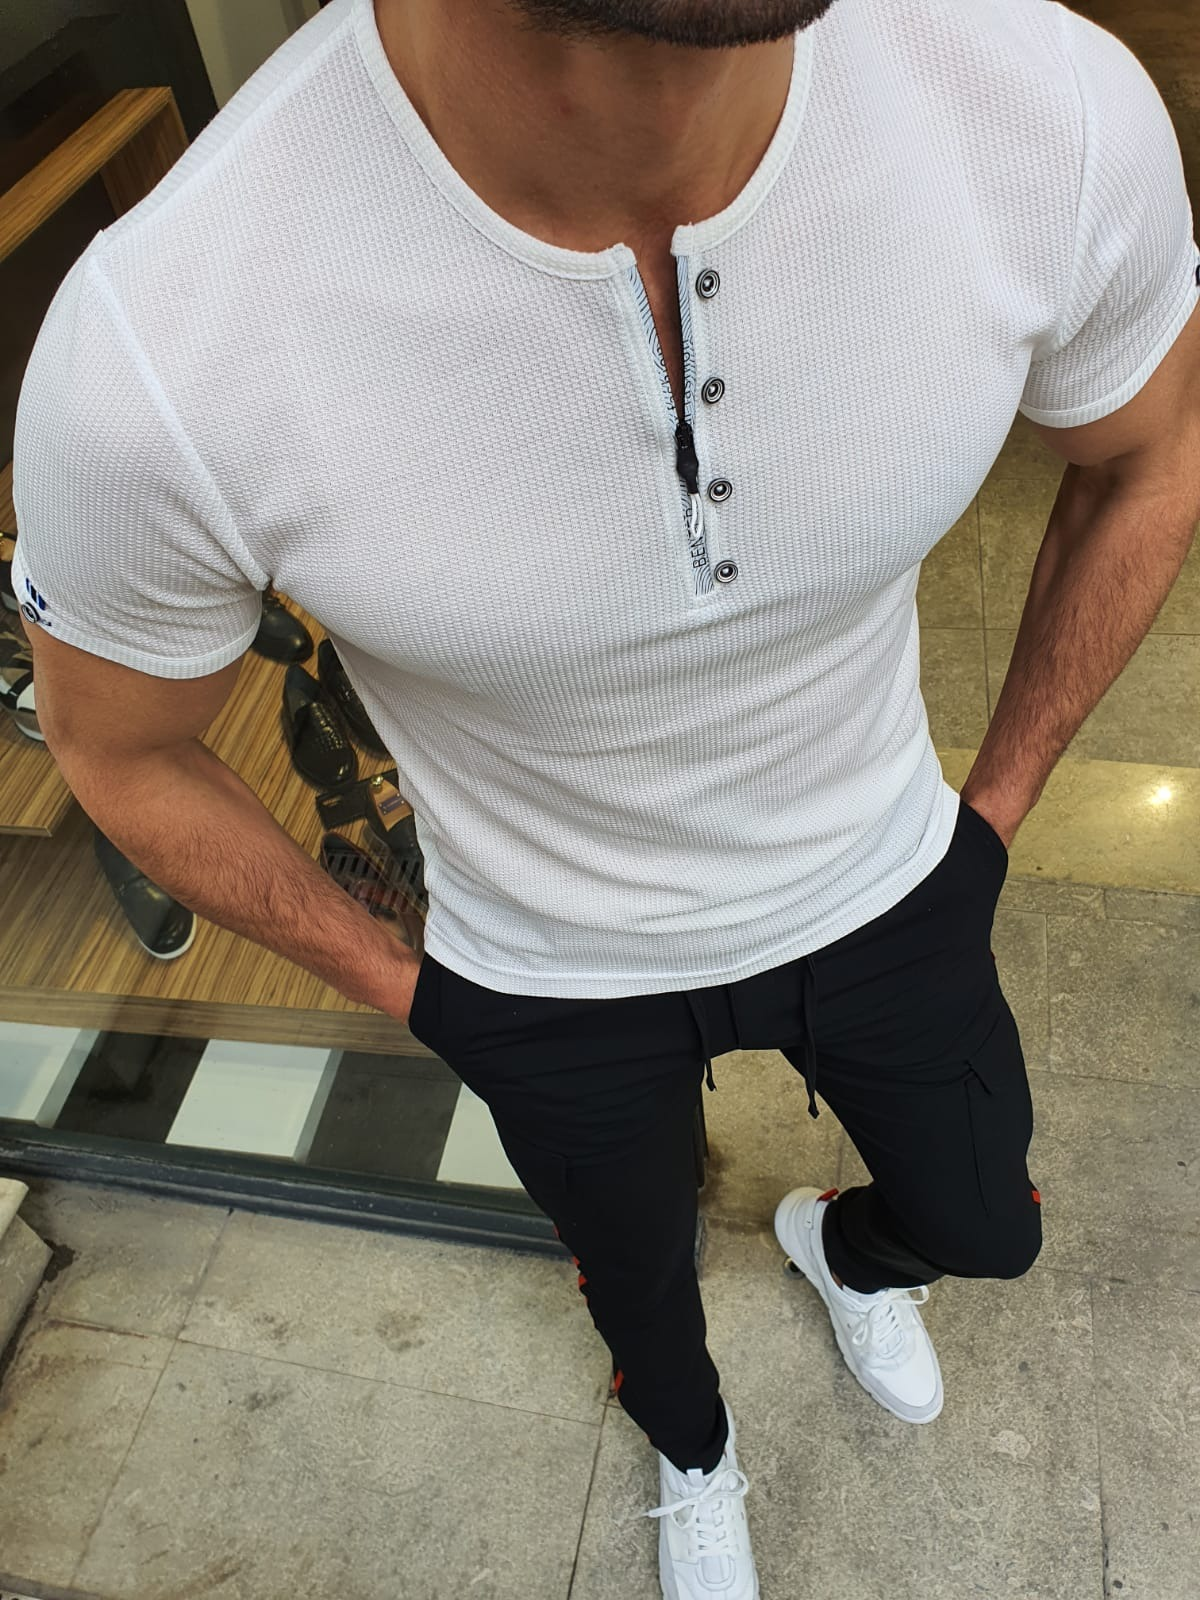 How To Elevate Your Wardrobe & Style With White Sneakers by GentWith